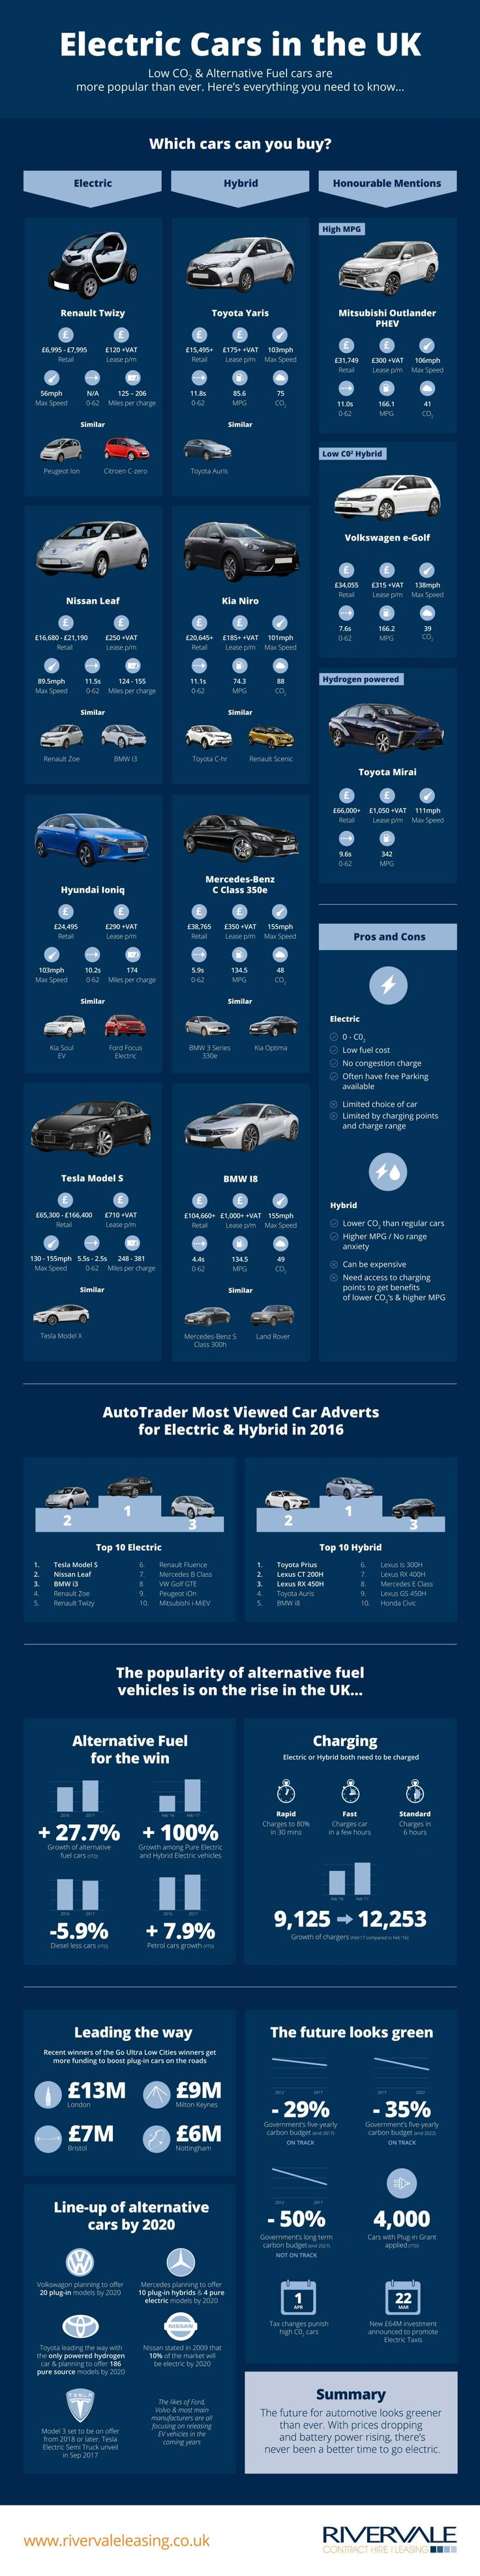 The 19 Best General Images On Pinterest Learning Behavior And Diagrams Dragon School Of Motoring Electric Cars In Uk Infographic